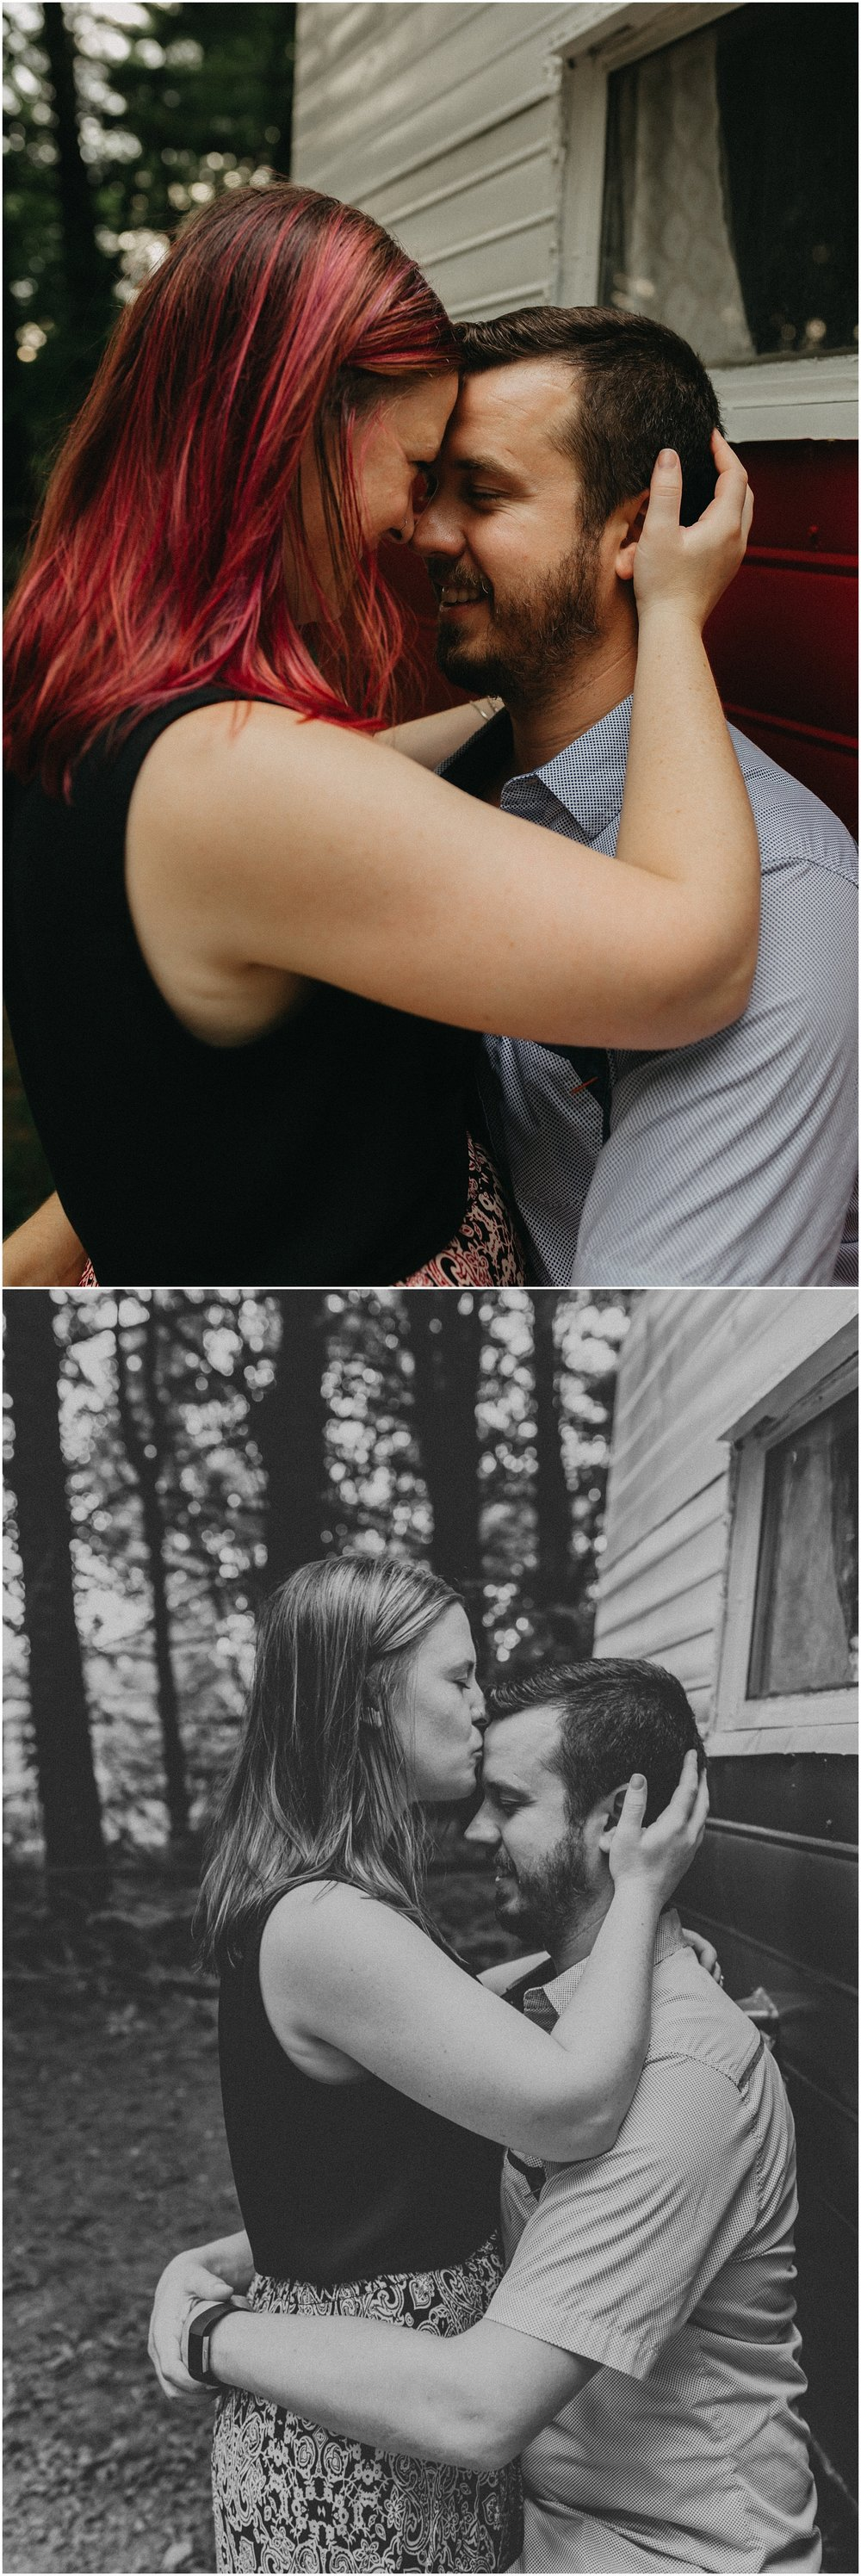 lifestyle-anniversary-engagement-photo session-rv-camping-road trip-vintage trailer-camping-outdoor photos_0245.jpg